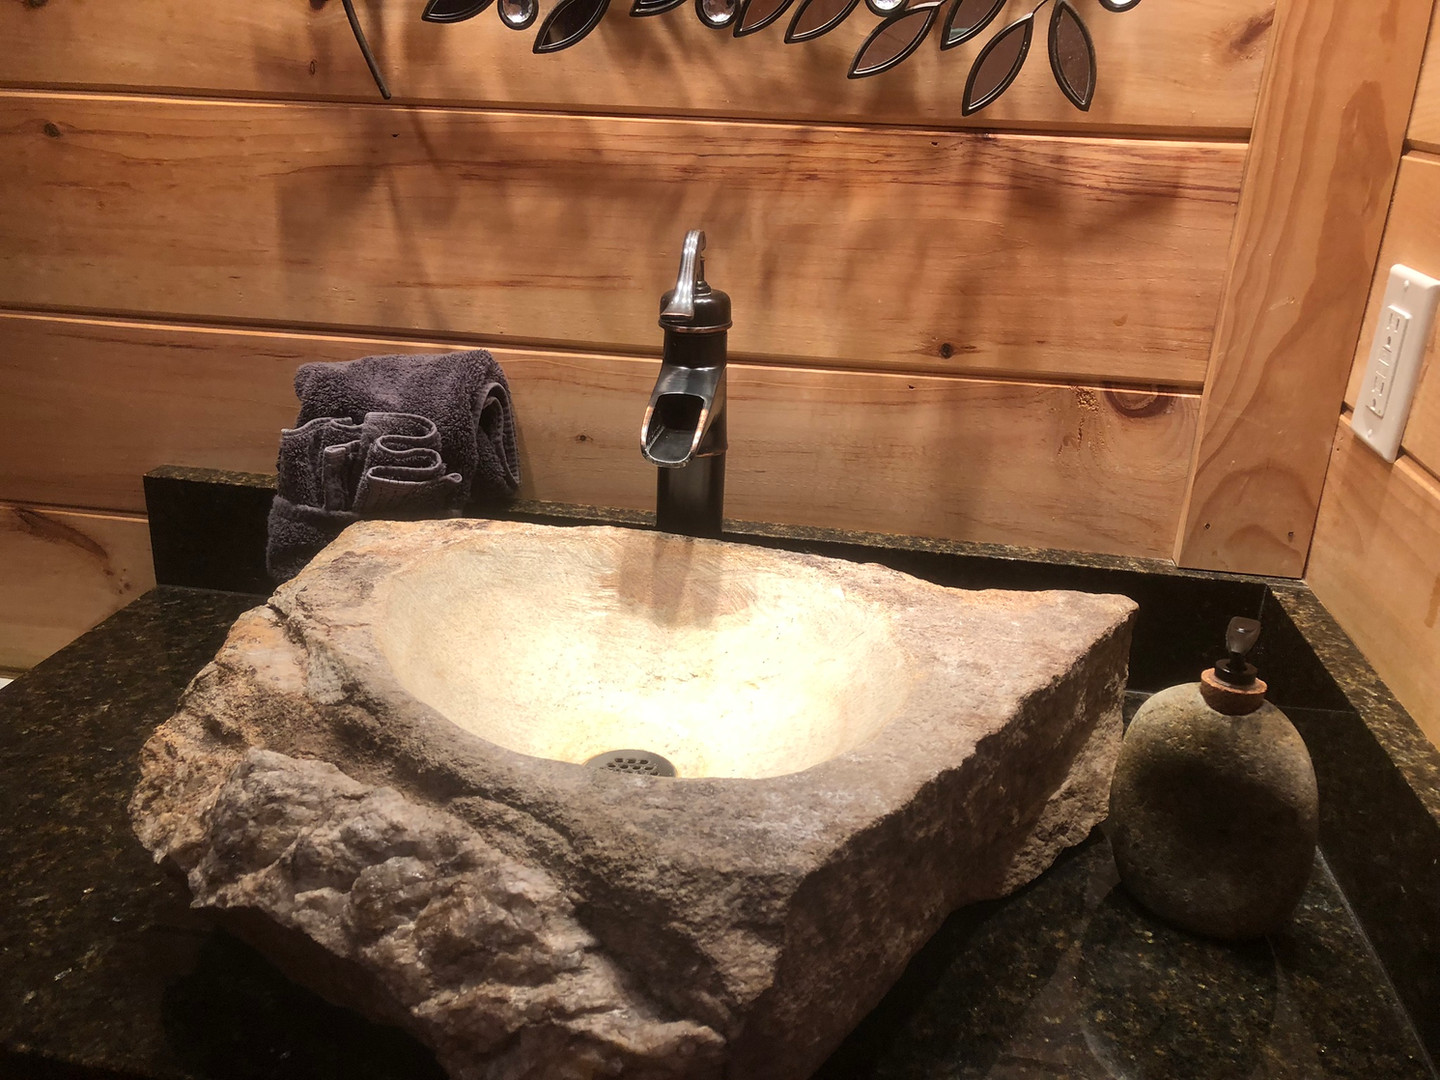 Handmade rock sink in the Fontana's full bath.